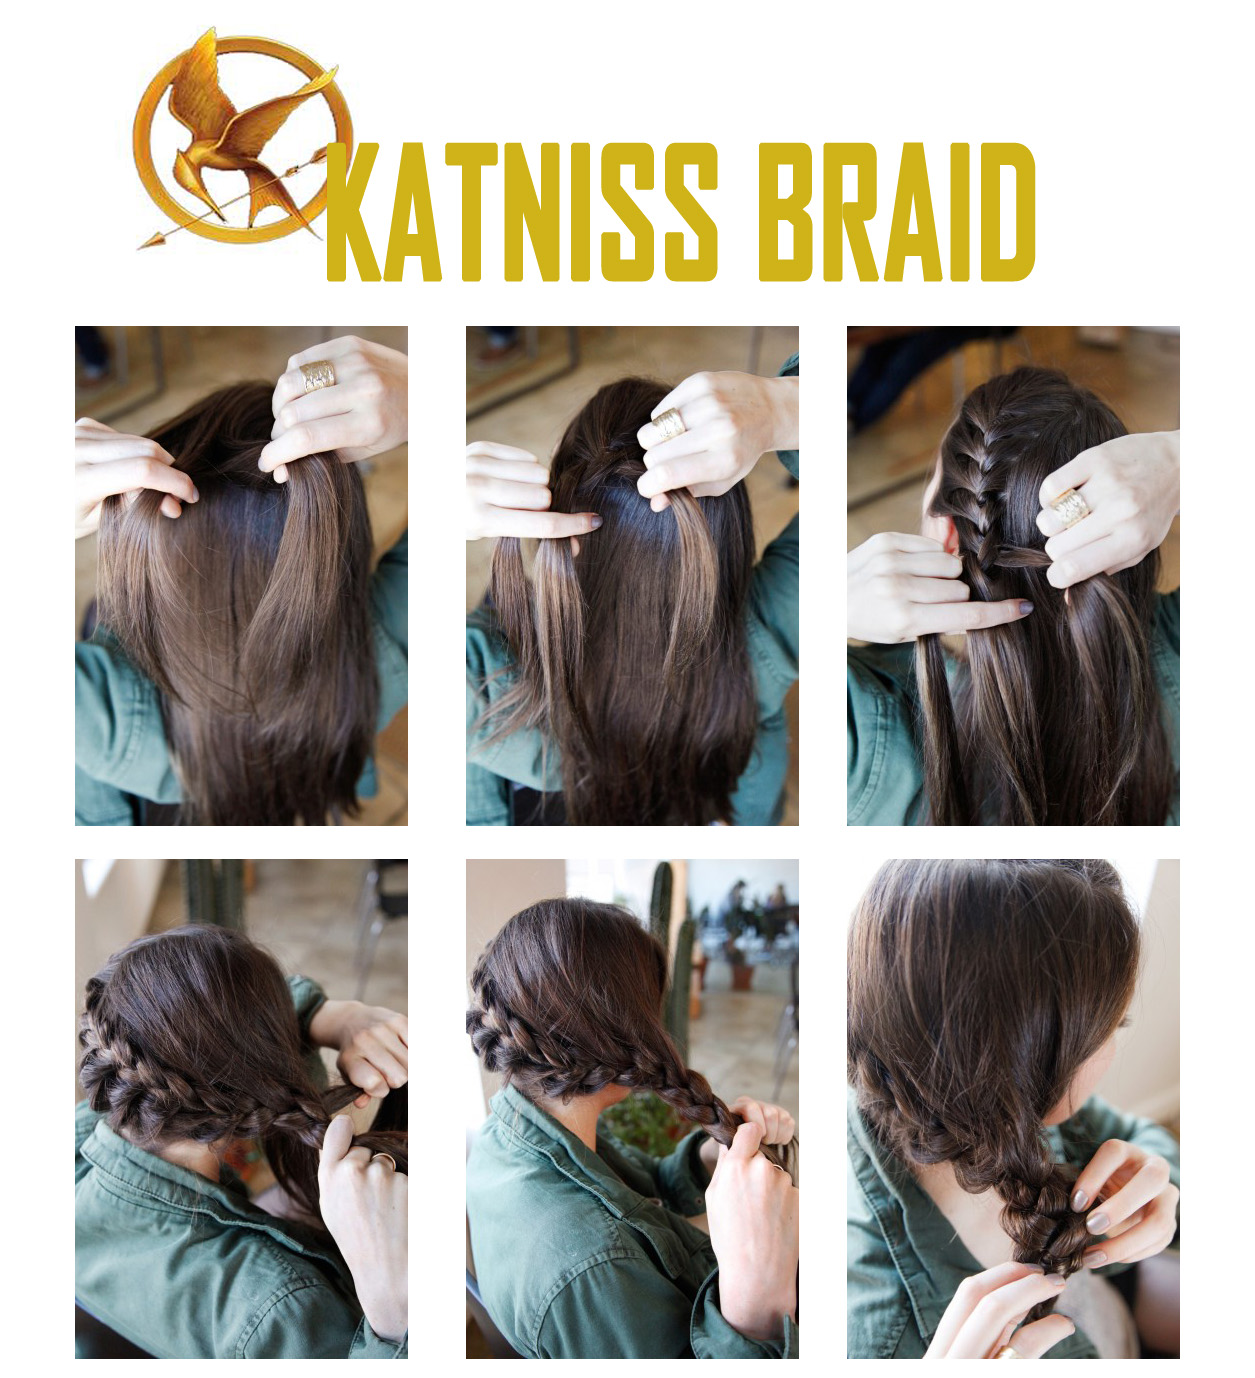 The Edge Salon: Are you hungry for the Katniss Braid?